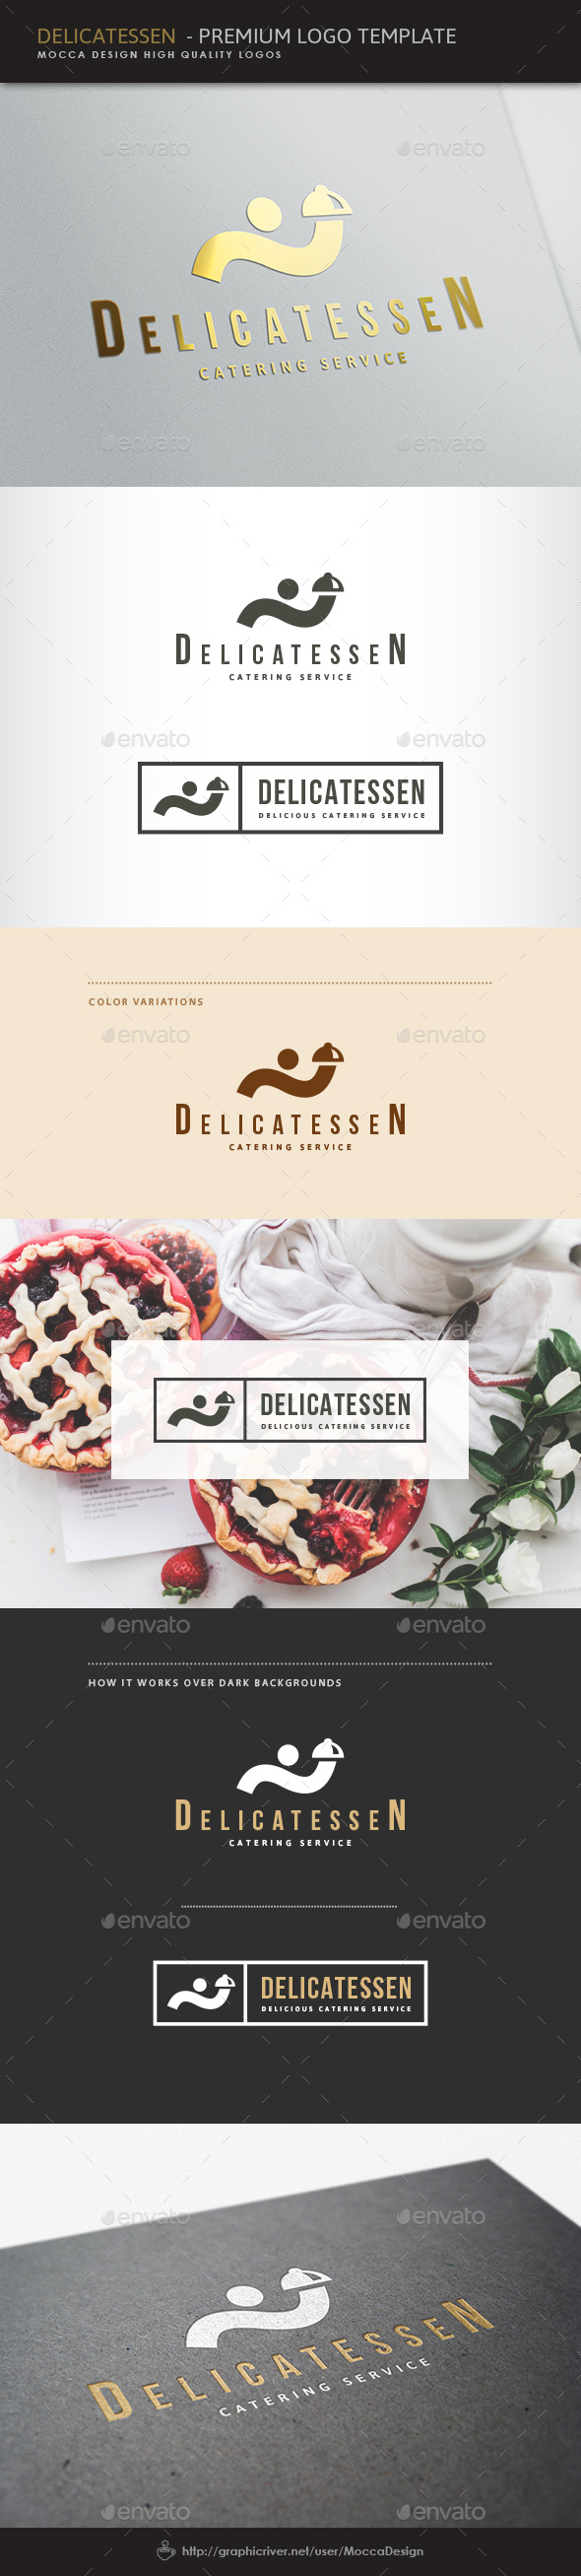 Delicatessen Logo - Food Logo Templates